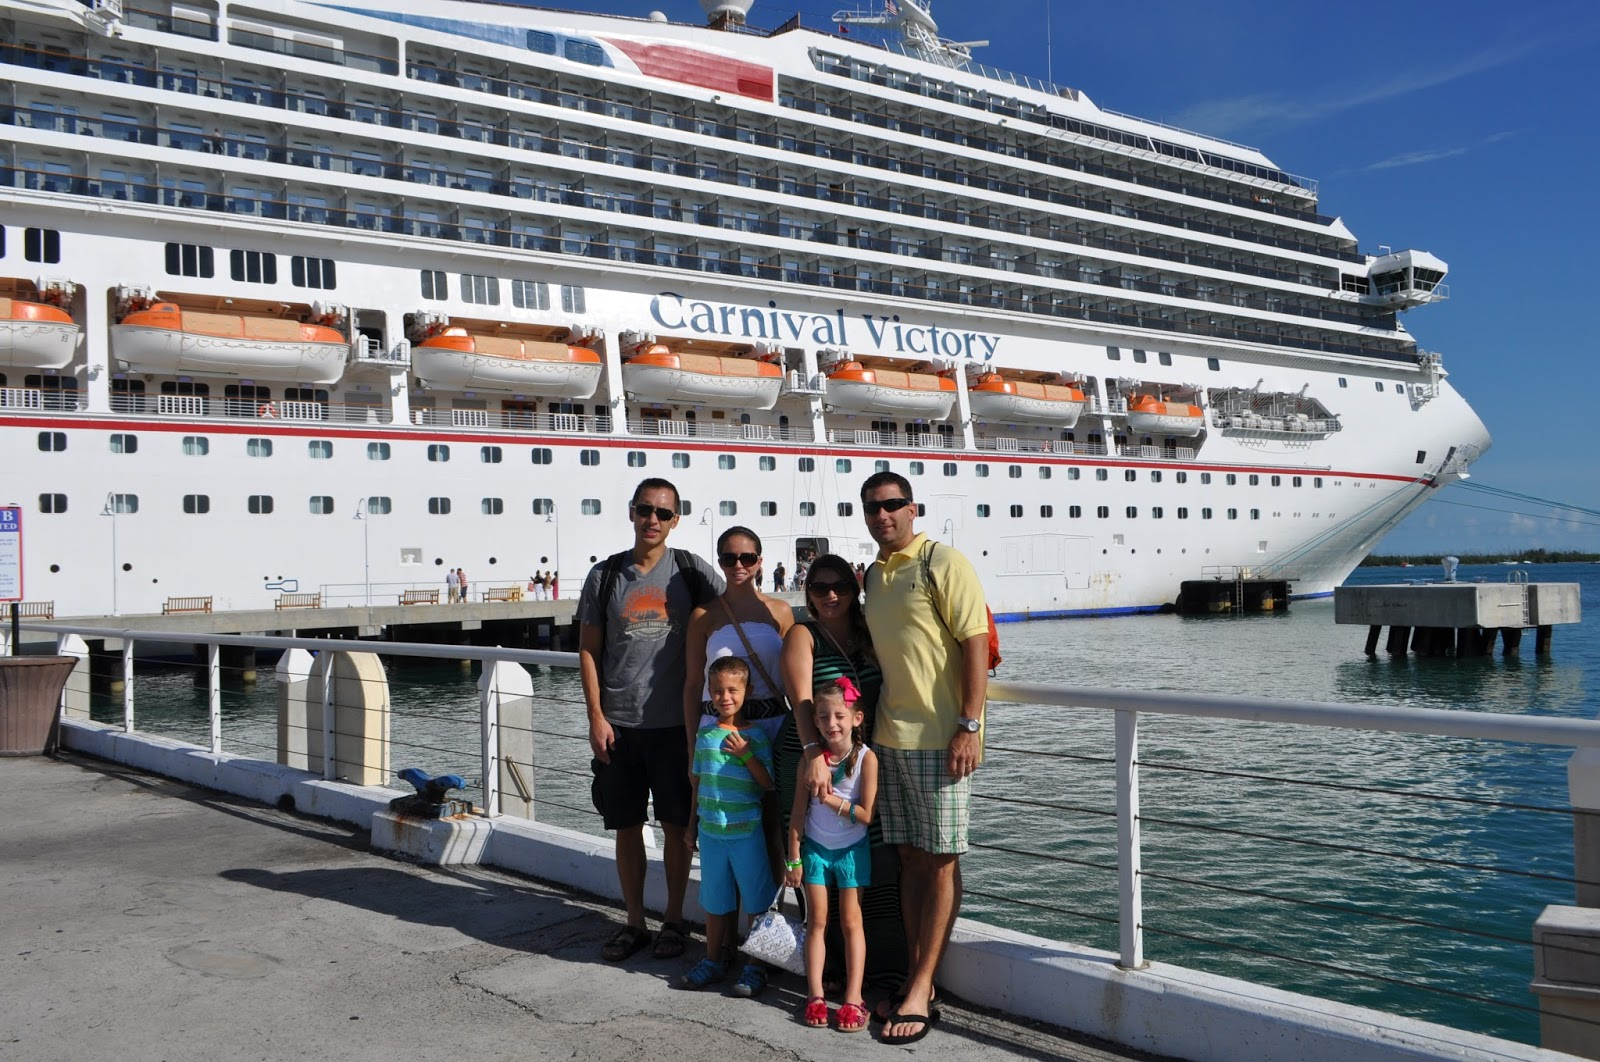 Search your cruise for swingers